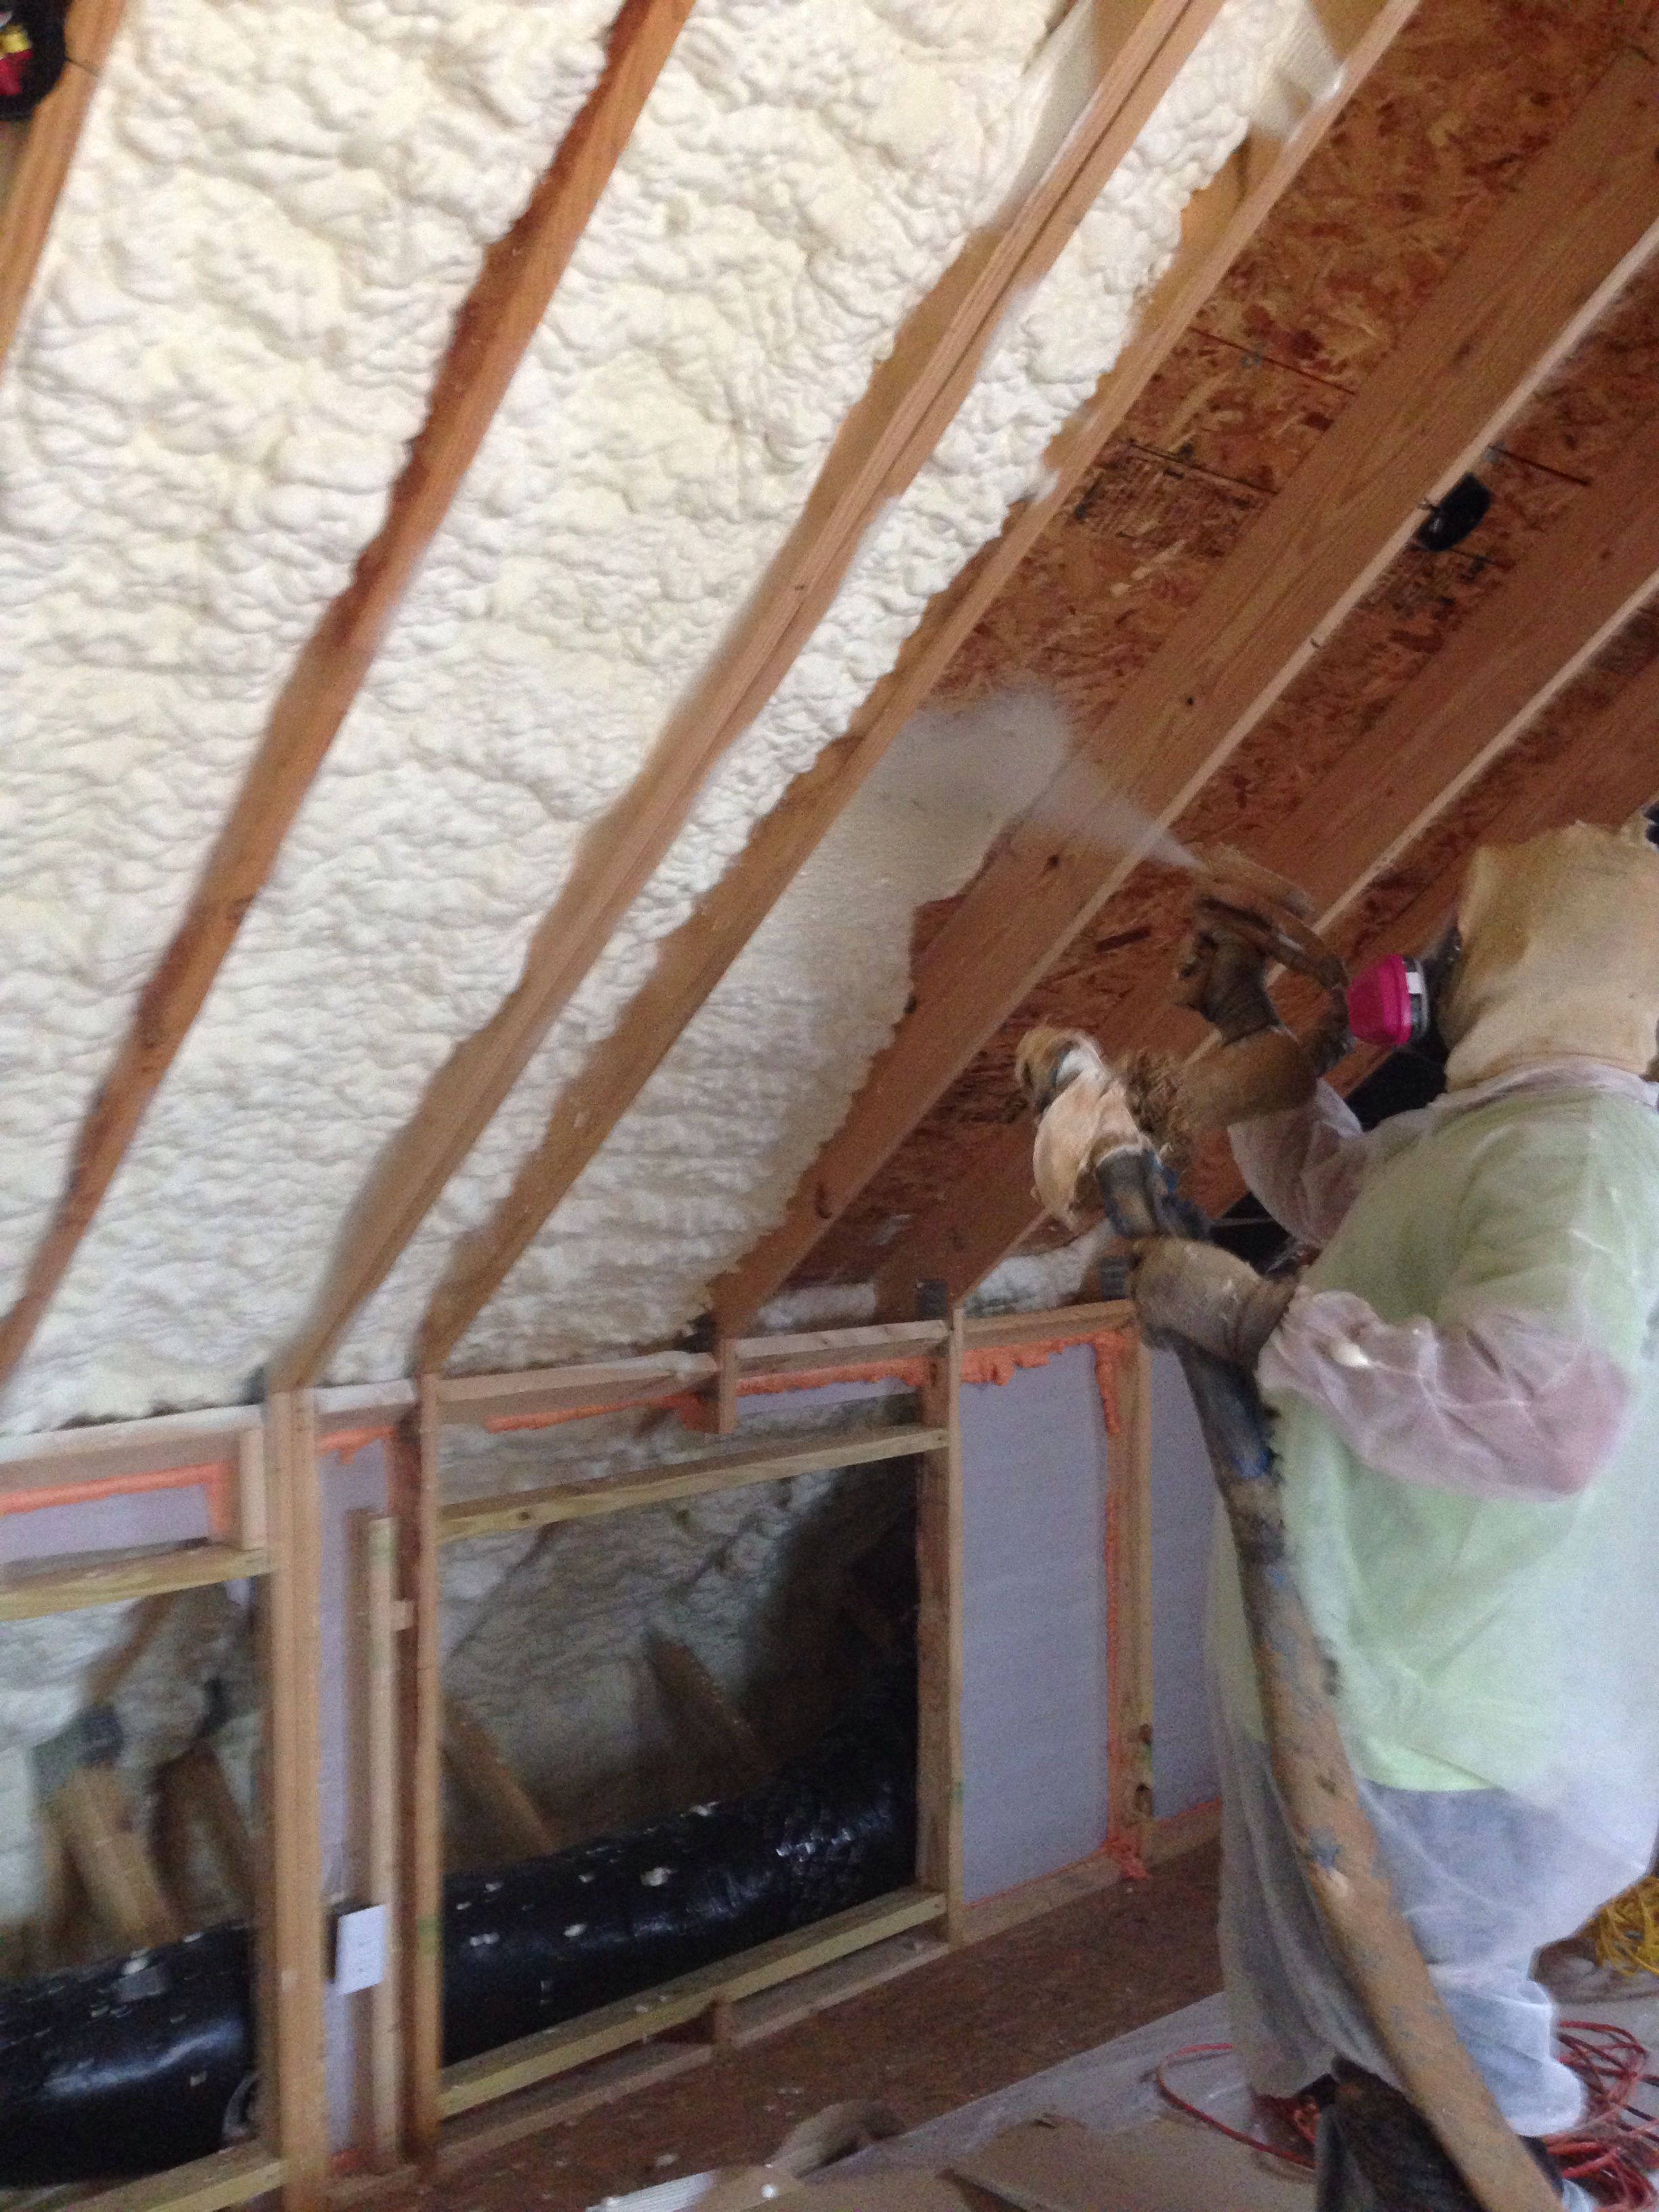 Spray Foam Insulation Installed In Older House To Save On Energy Installed By Mpi Foam Spray Foam Spray Foam Insulation Diy Spray Foam Insulation